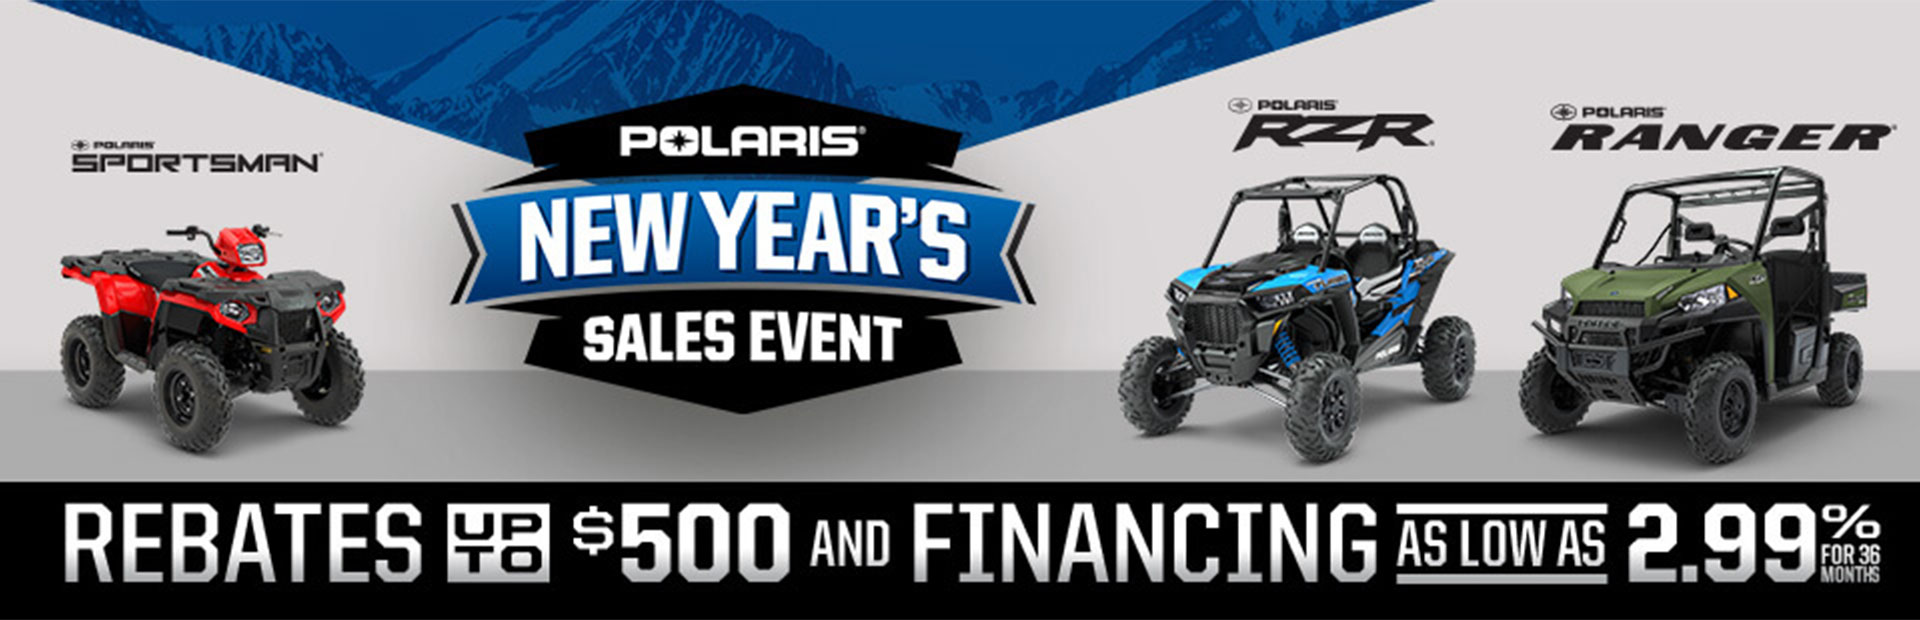 Polaris Industries: New Year's Sales Event (Off-Road)